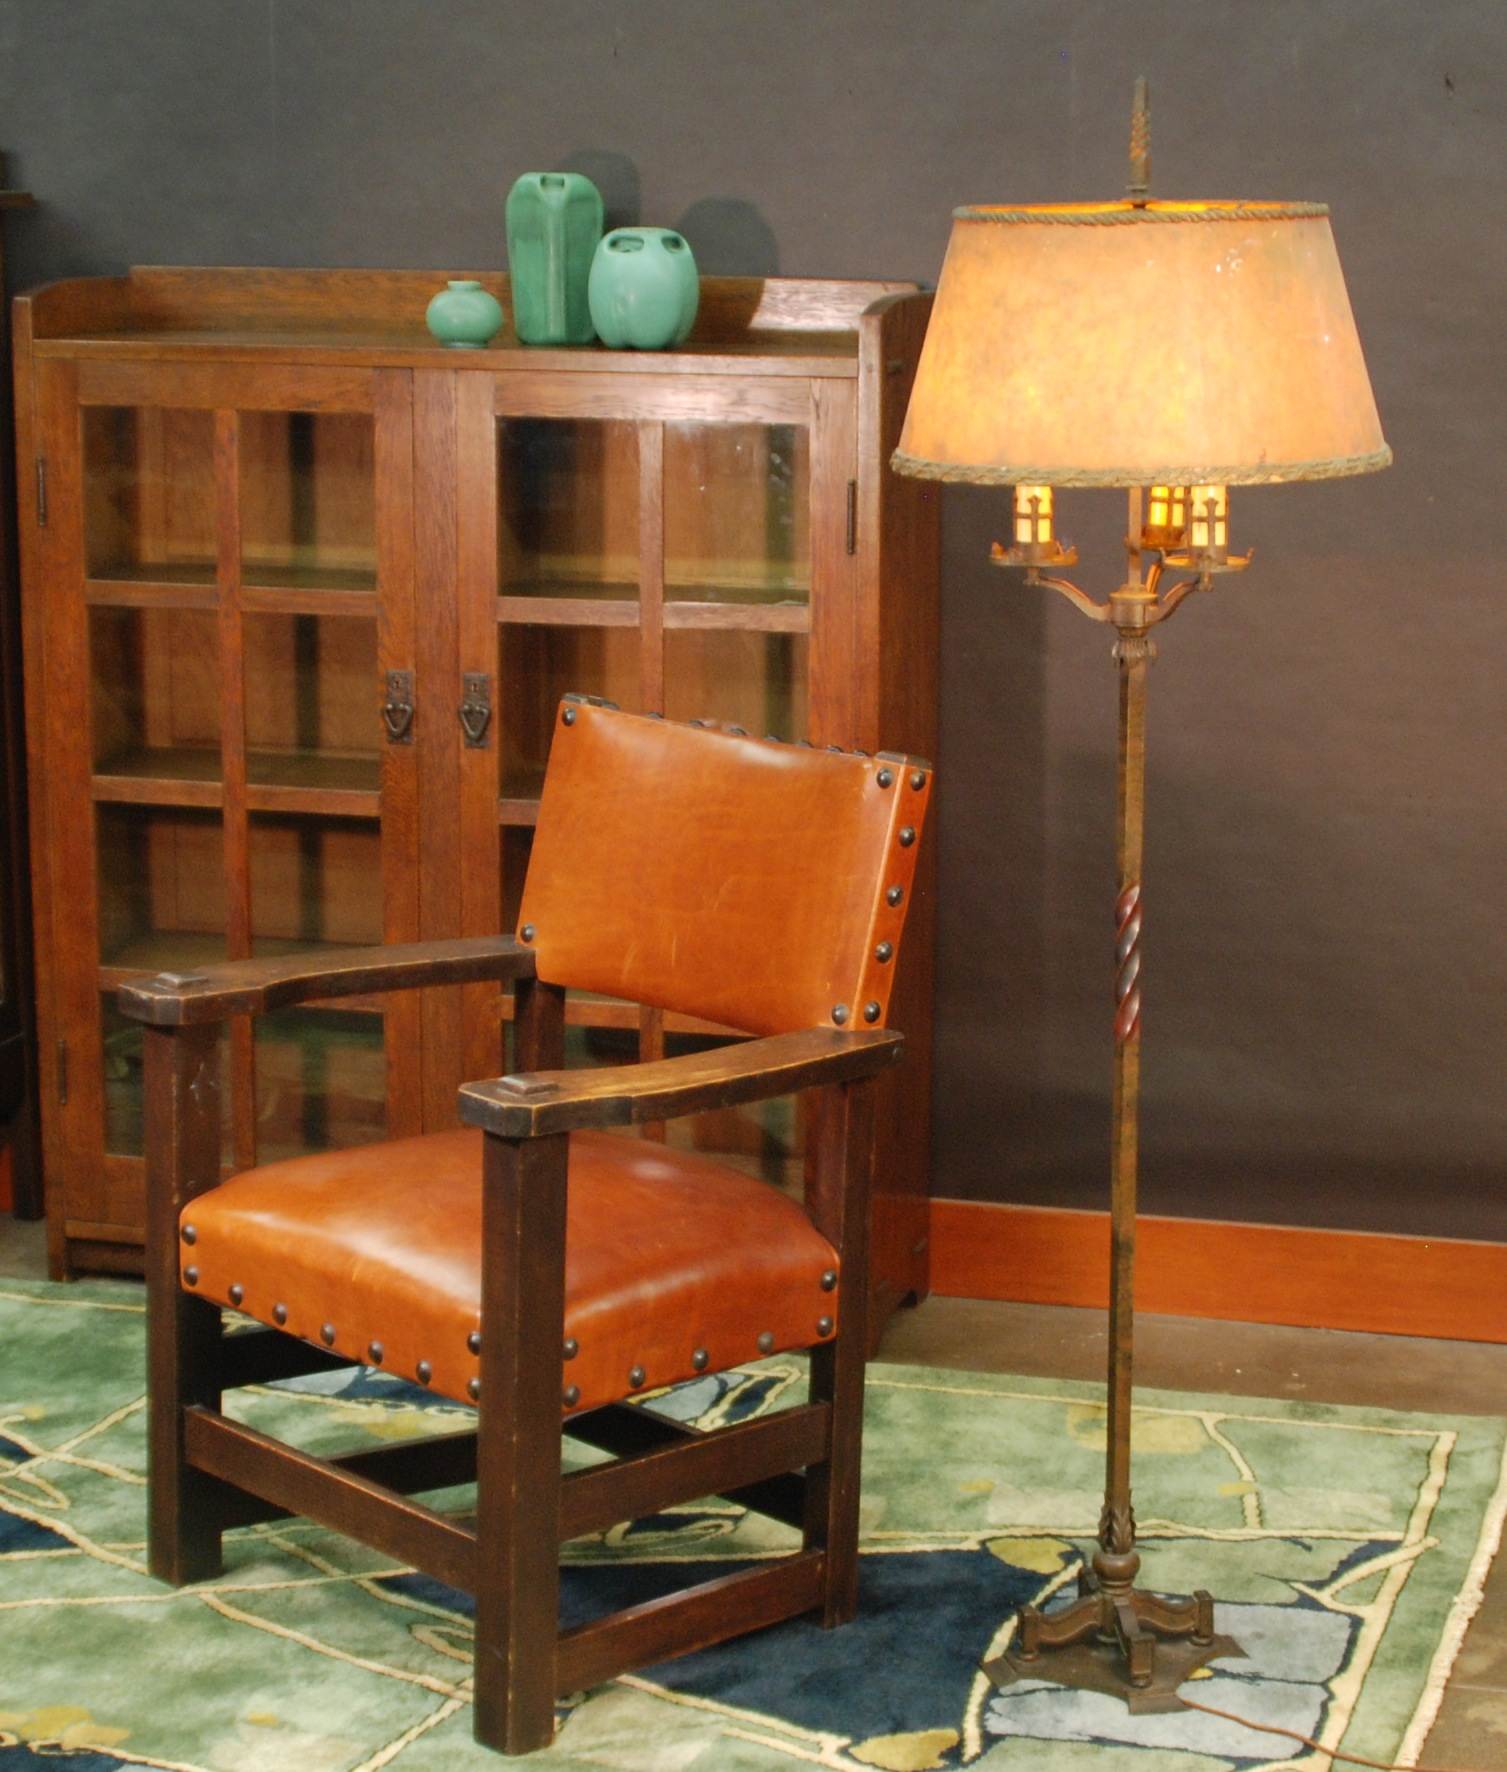 Clip lights for crafts - Shown With Large Early Limbert Clip Corner Arm Chair